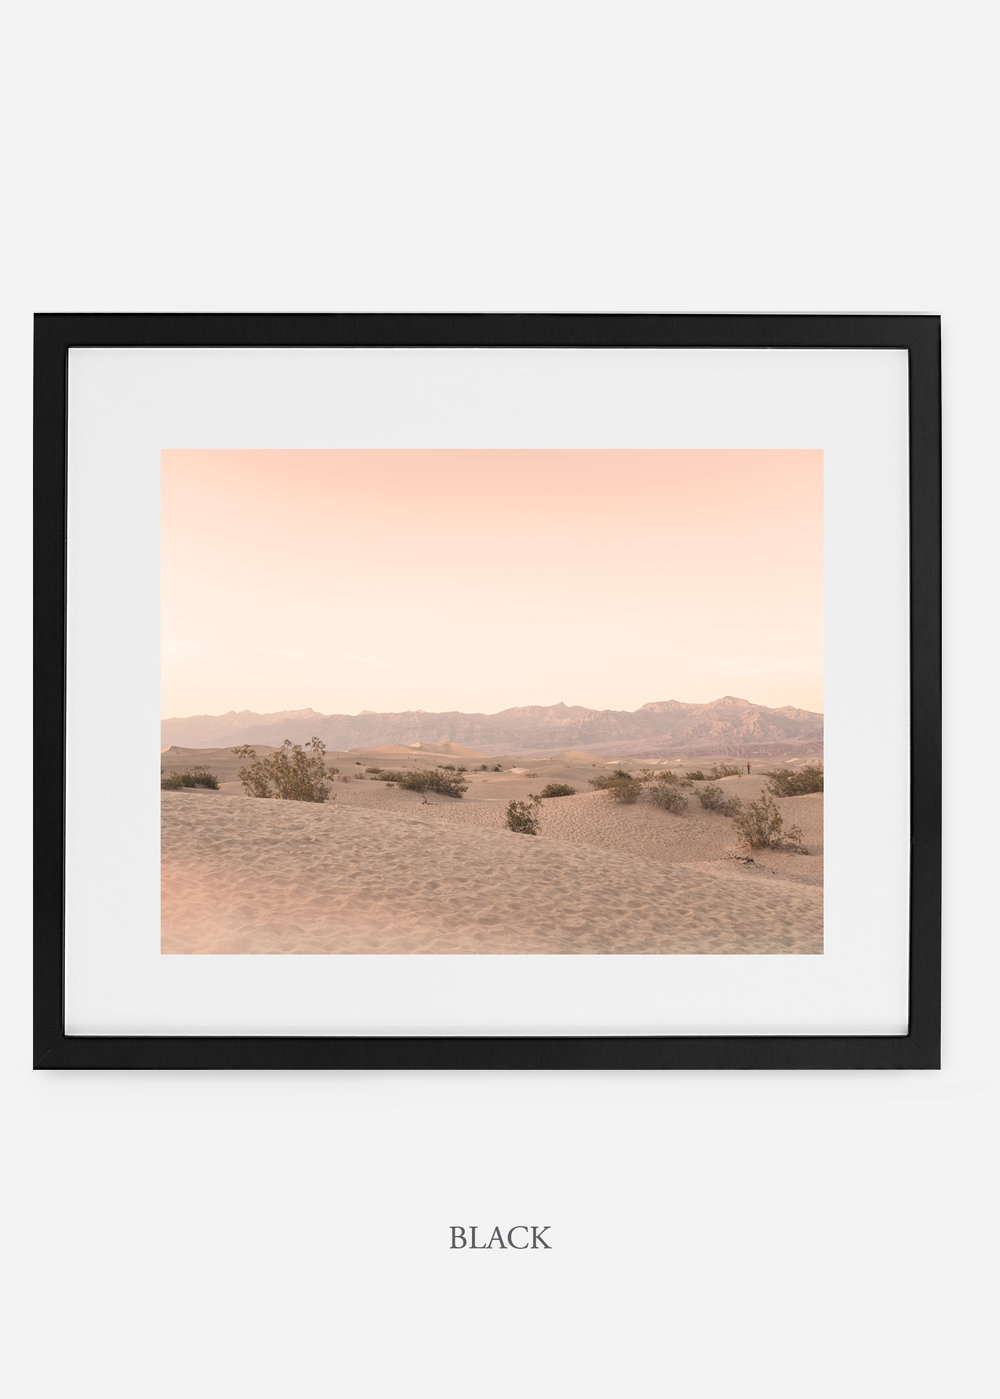 wildercalifornia_blackframe__deathvalley_4_cactus_art_interiordesign_blackandwhite.jpg